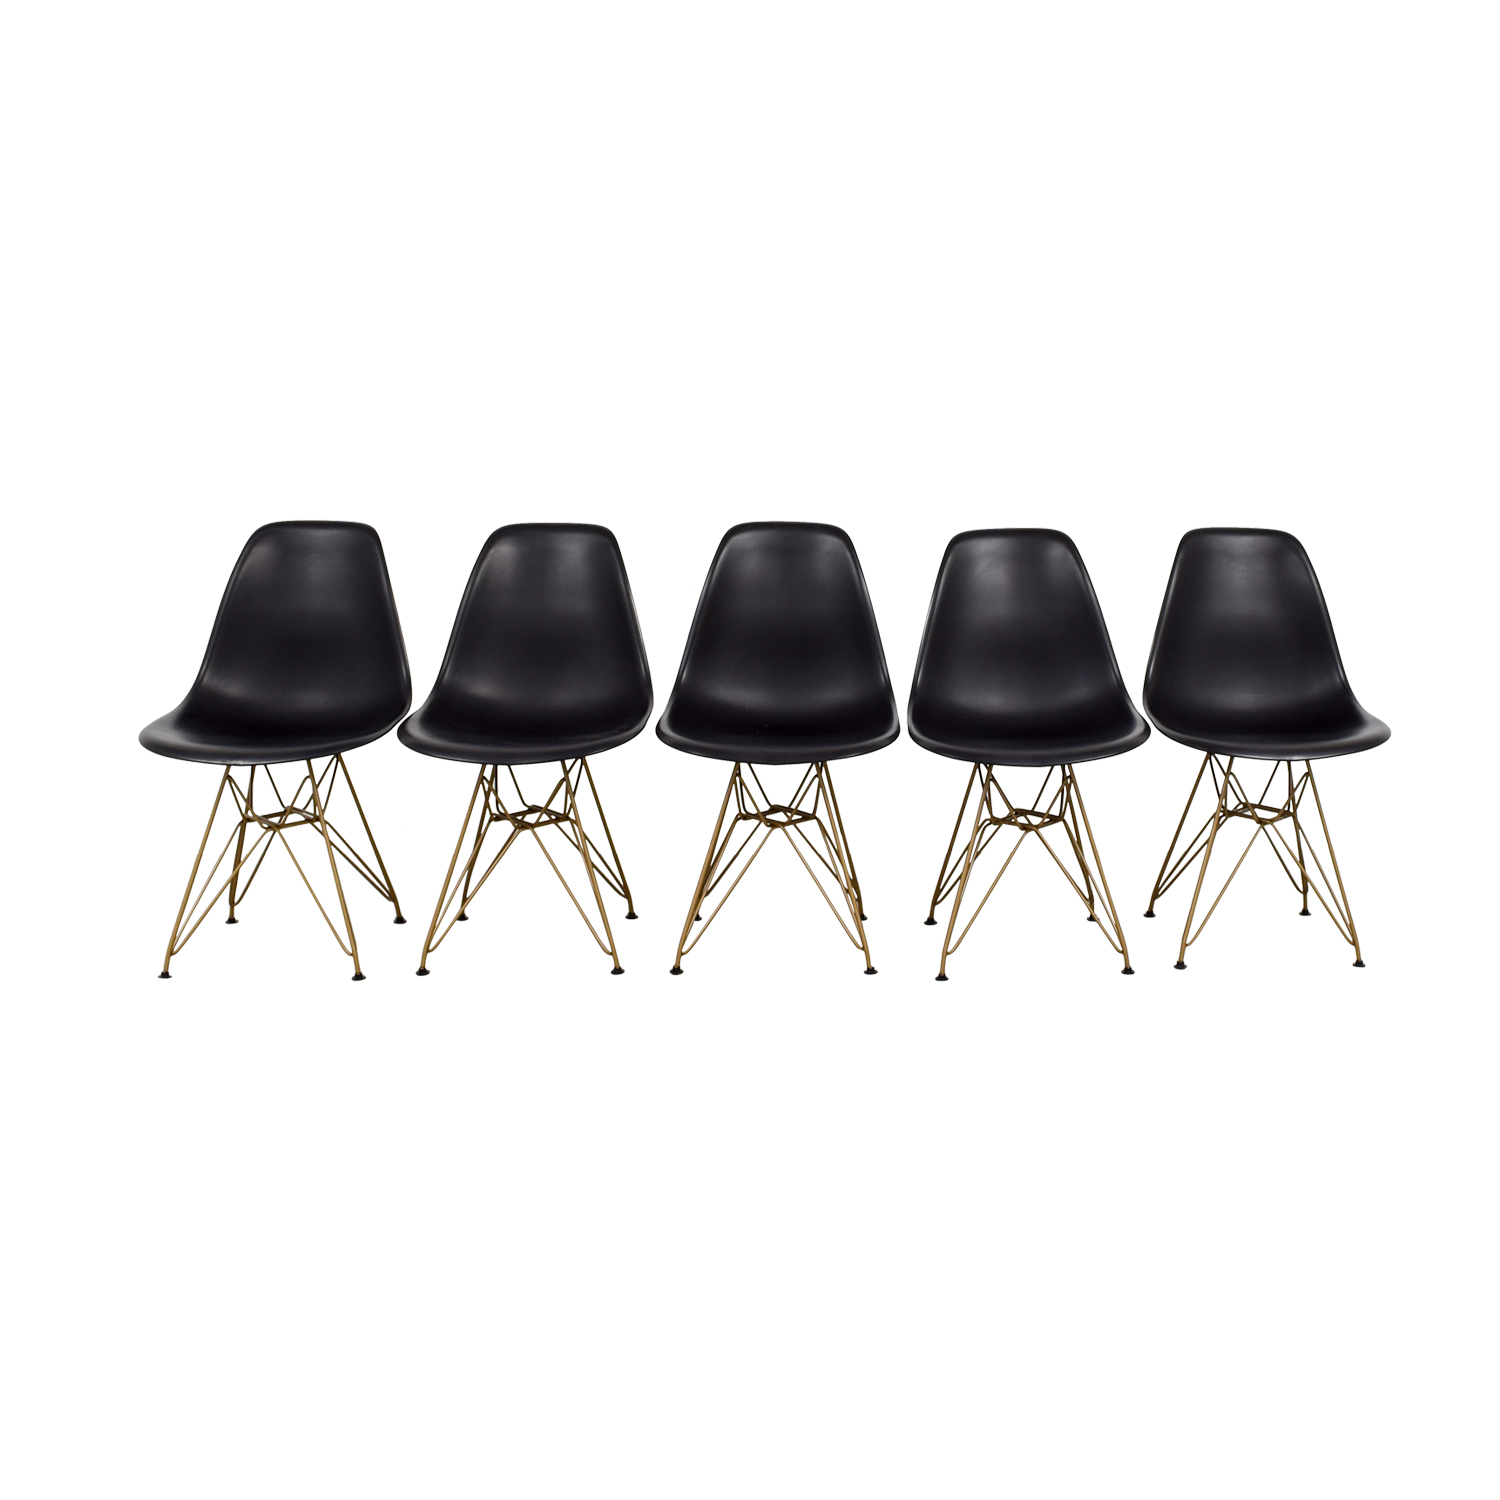 Junia Black Side Chairs on sale